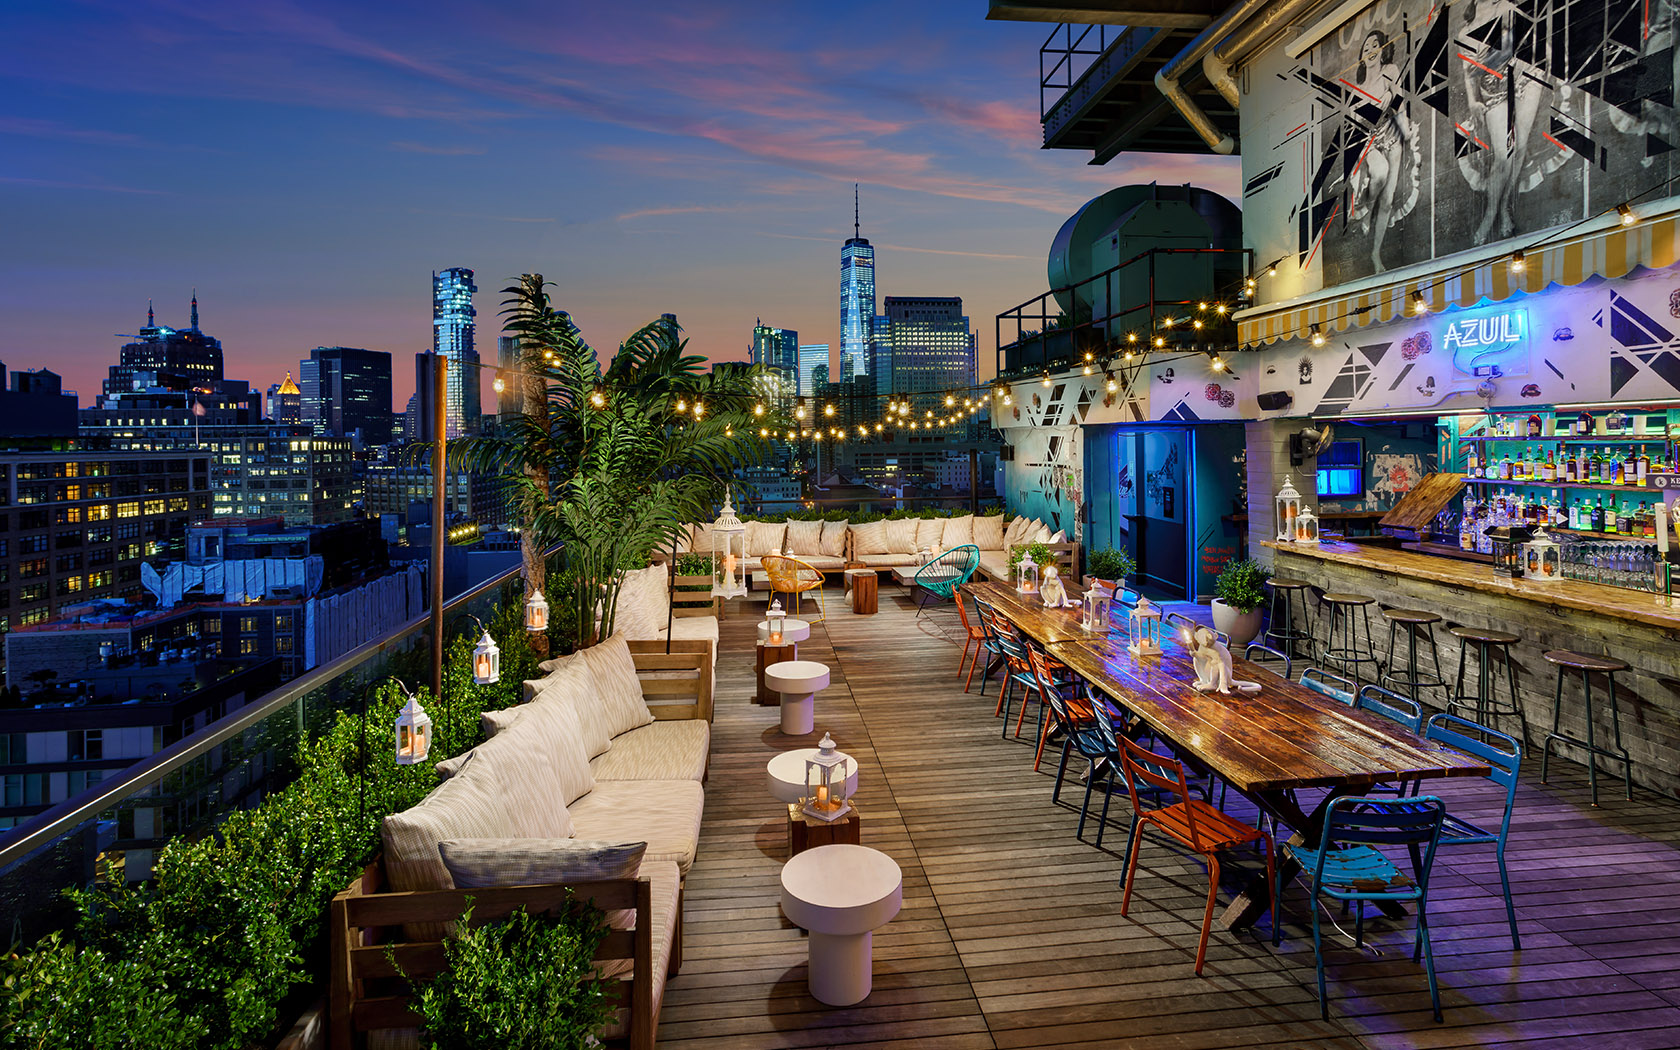 Azul on the Rooftop at Hotel Hugo, NYC puts a new spin on swanky outdoor living.  With a solid view of Manhattan's skyline, some funky art, colorful and eclectic furniture, it should be obvious while this spot is the cat's pajamas!